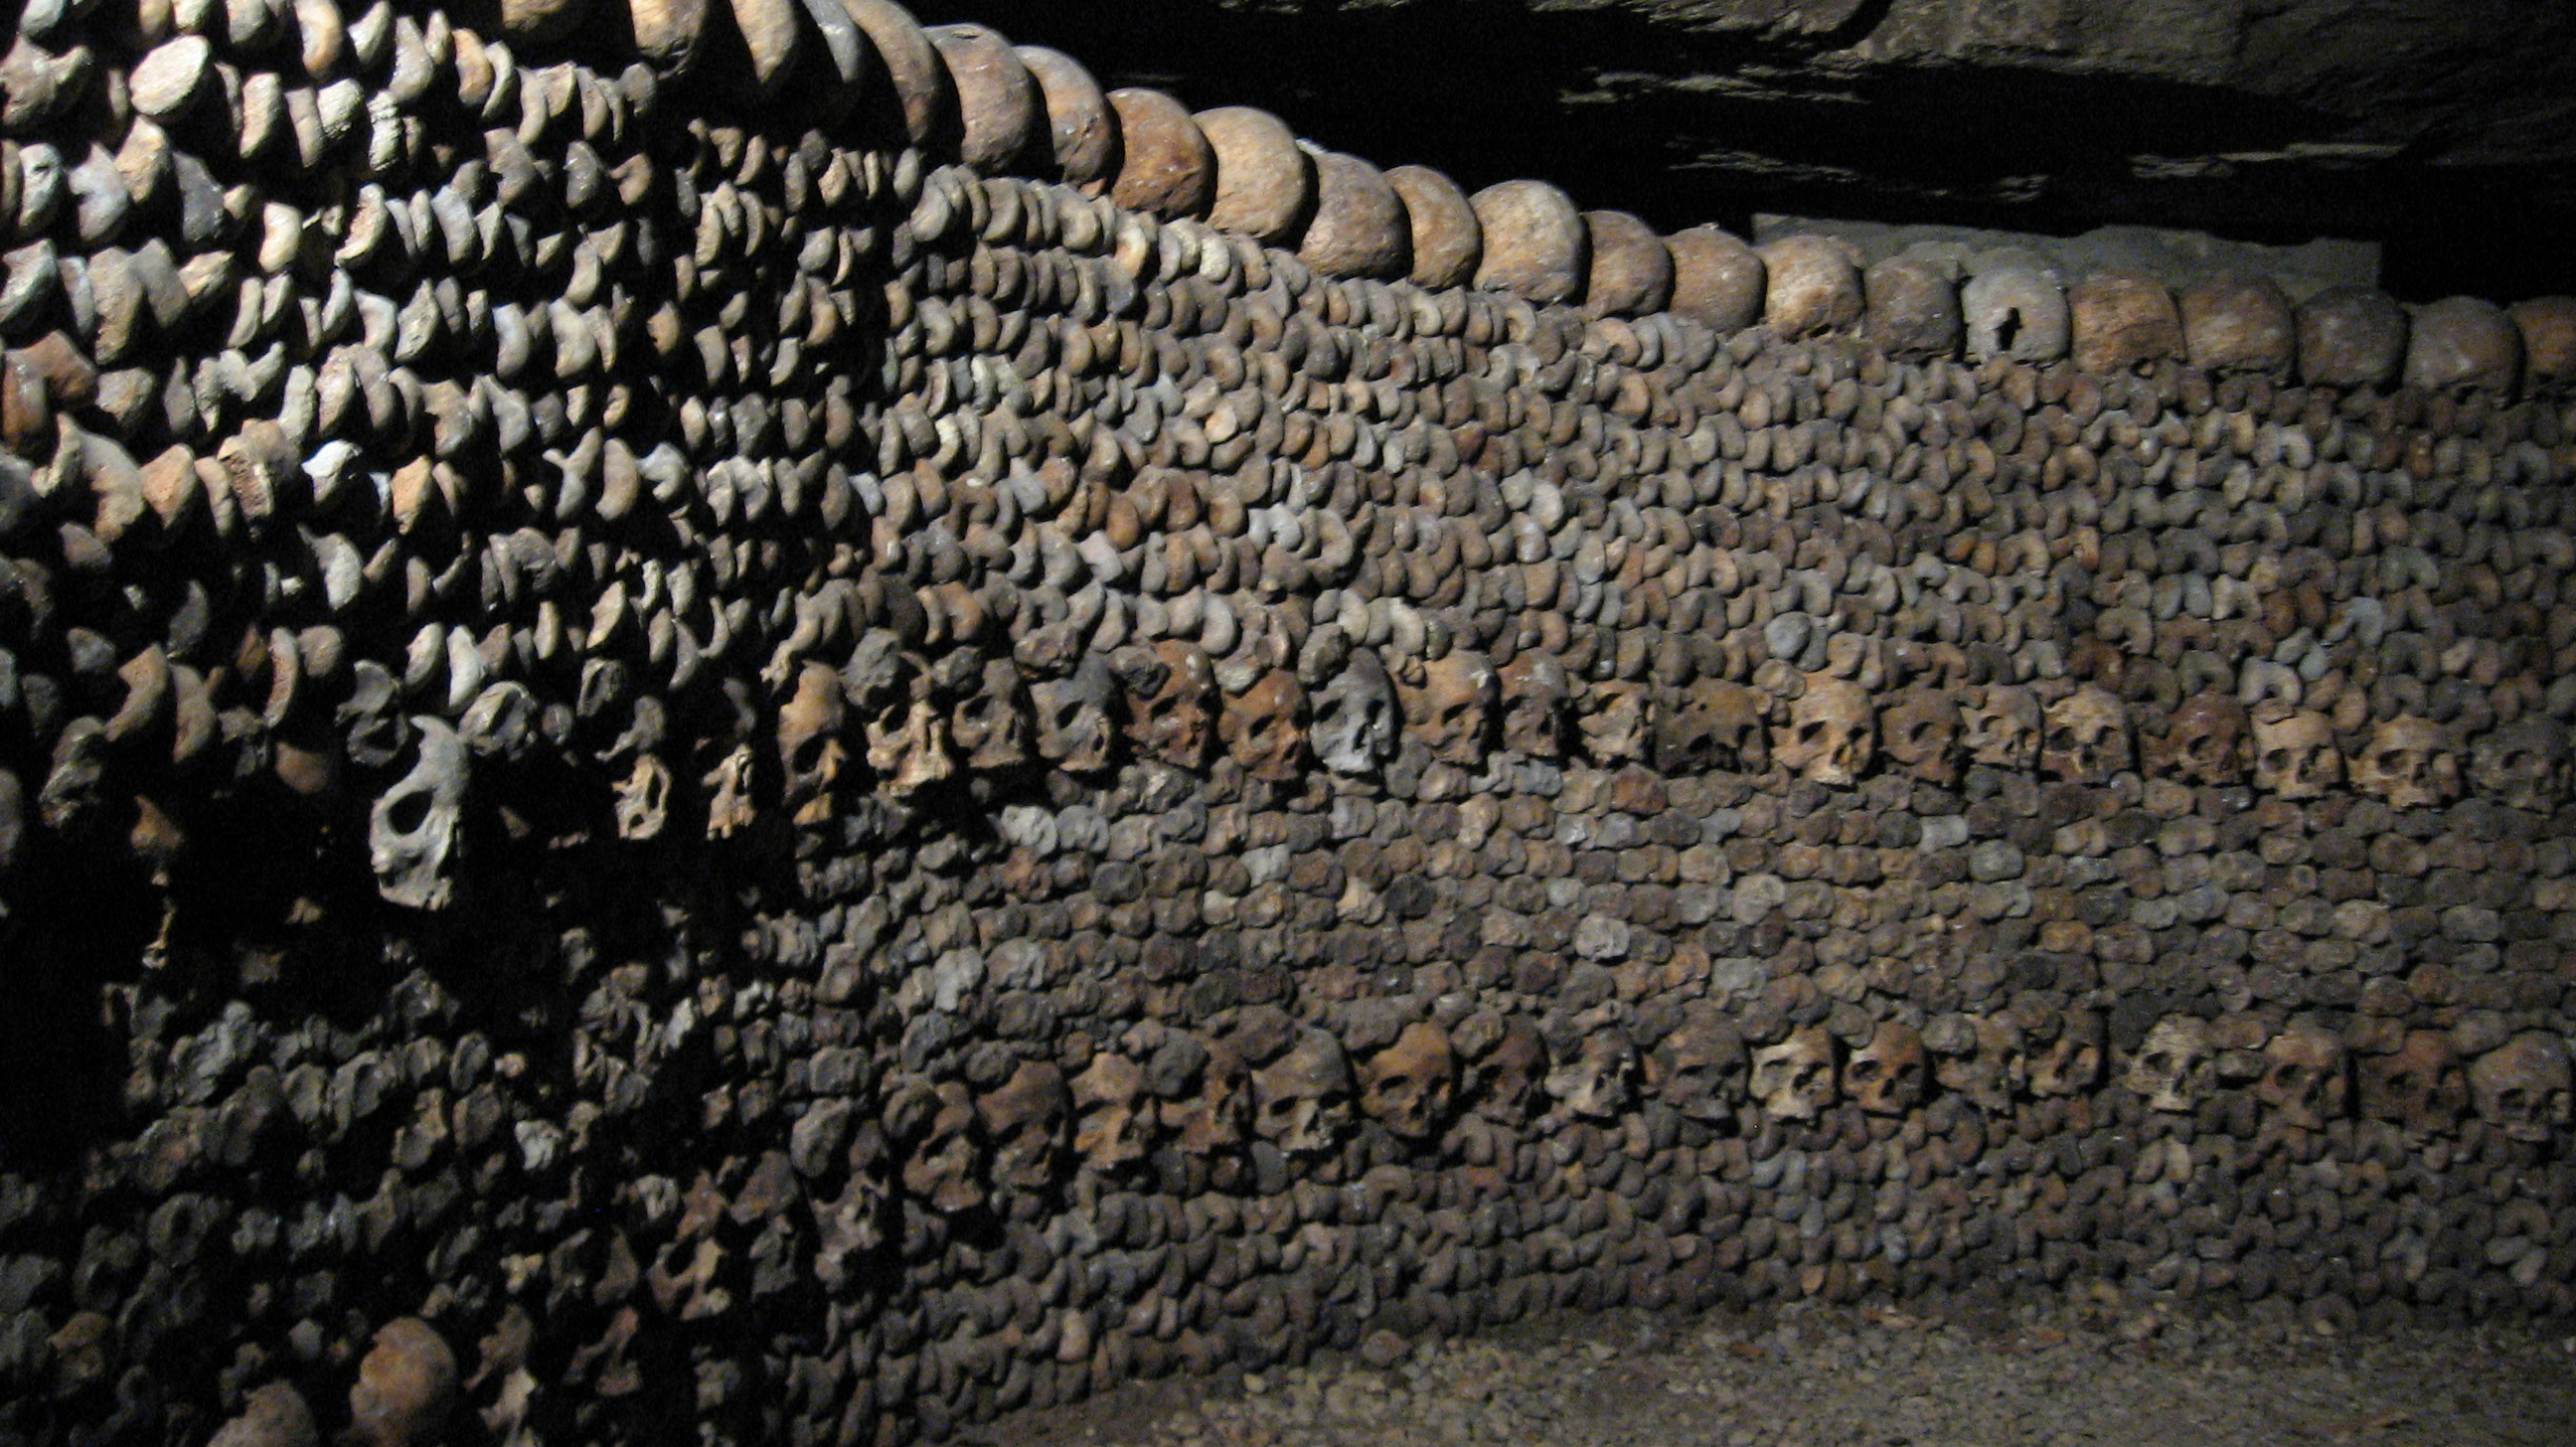 DJJ_1_Catacombes_de_Paris